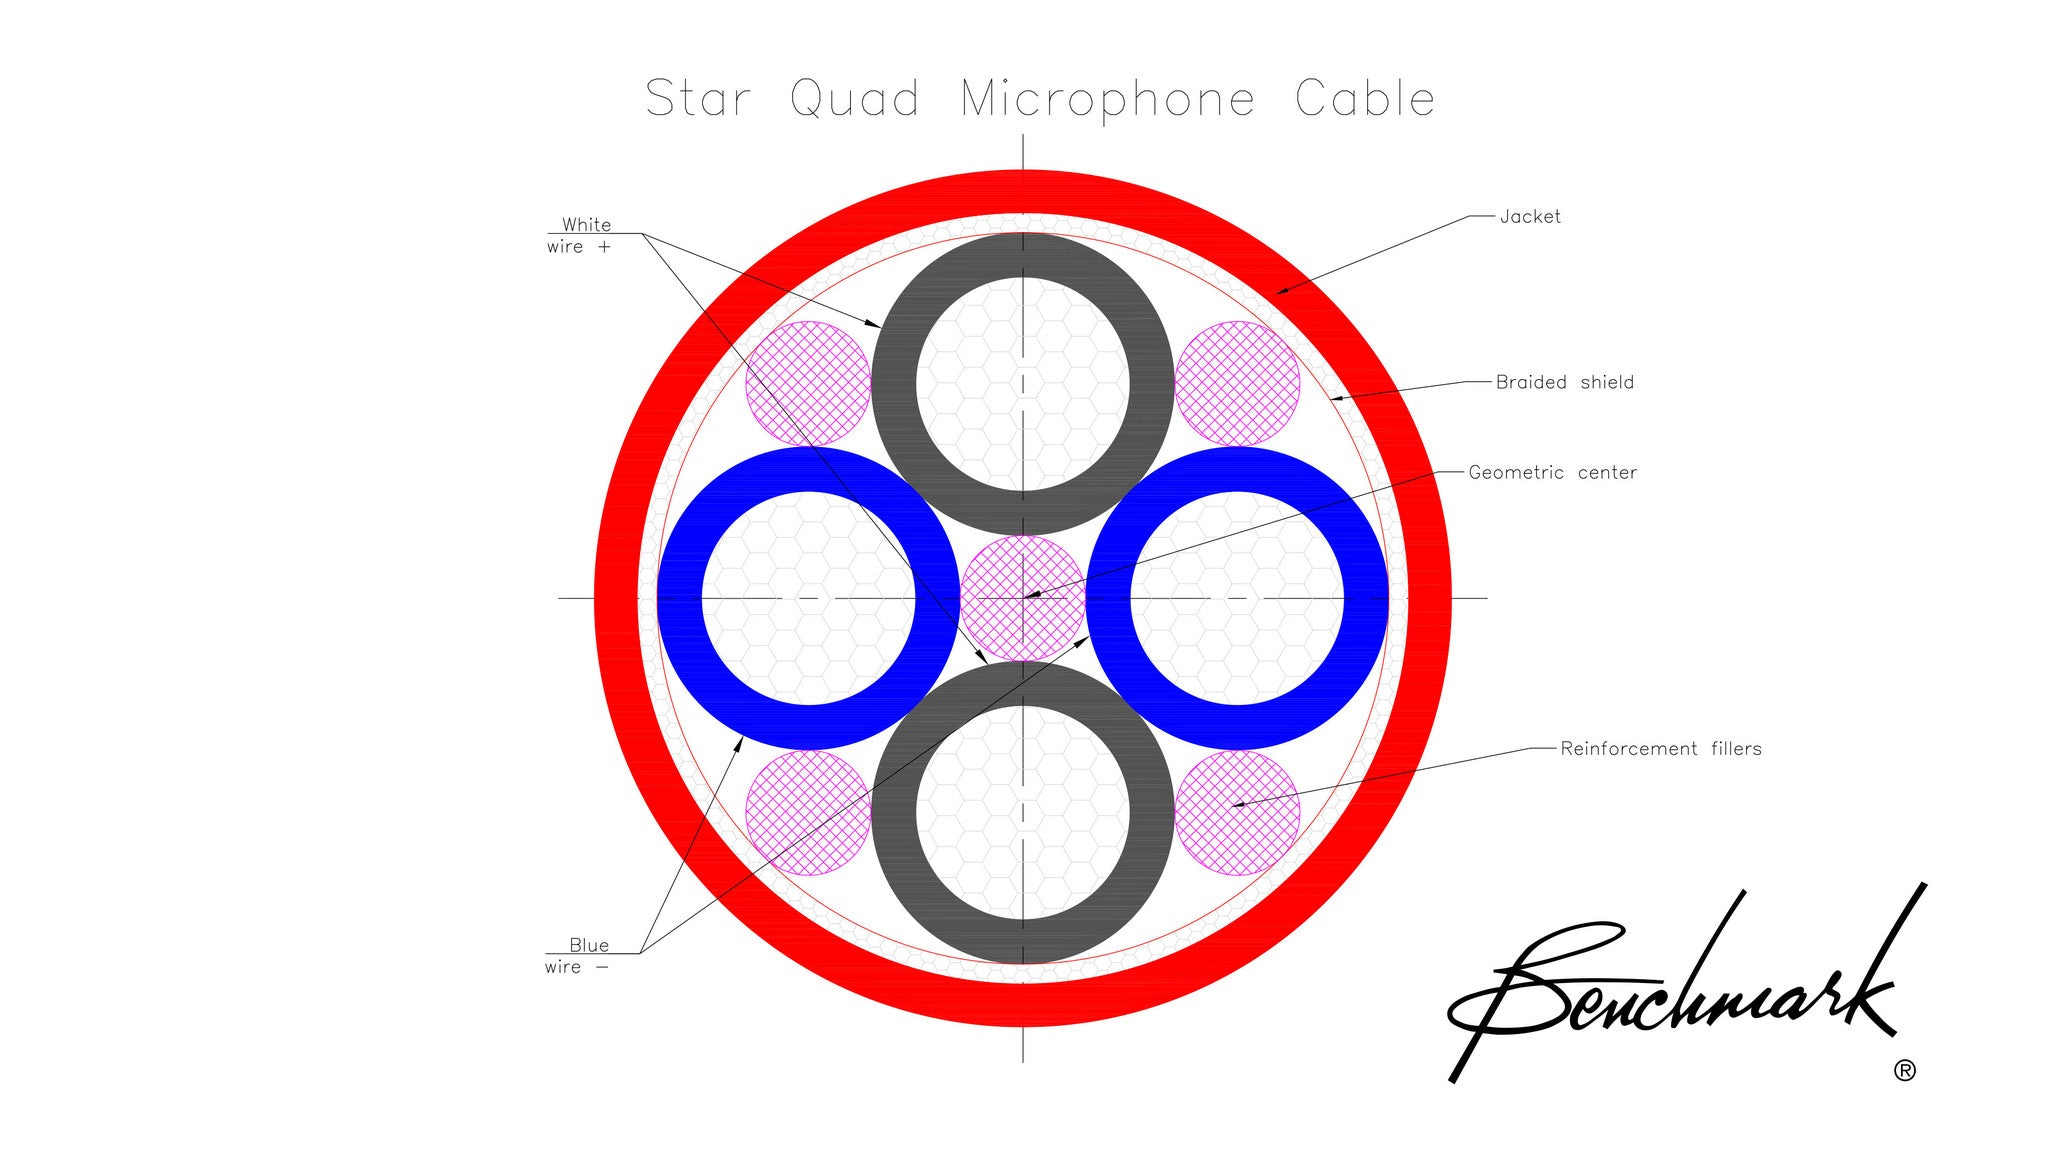 Balanced Star Quad Wiring Diagrams Example Electrical Diagram Eton 50cc Atv The Importance Of Microphone Cable Benchmark Media Rh Benchmarkmedia Com Chinese